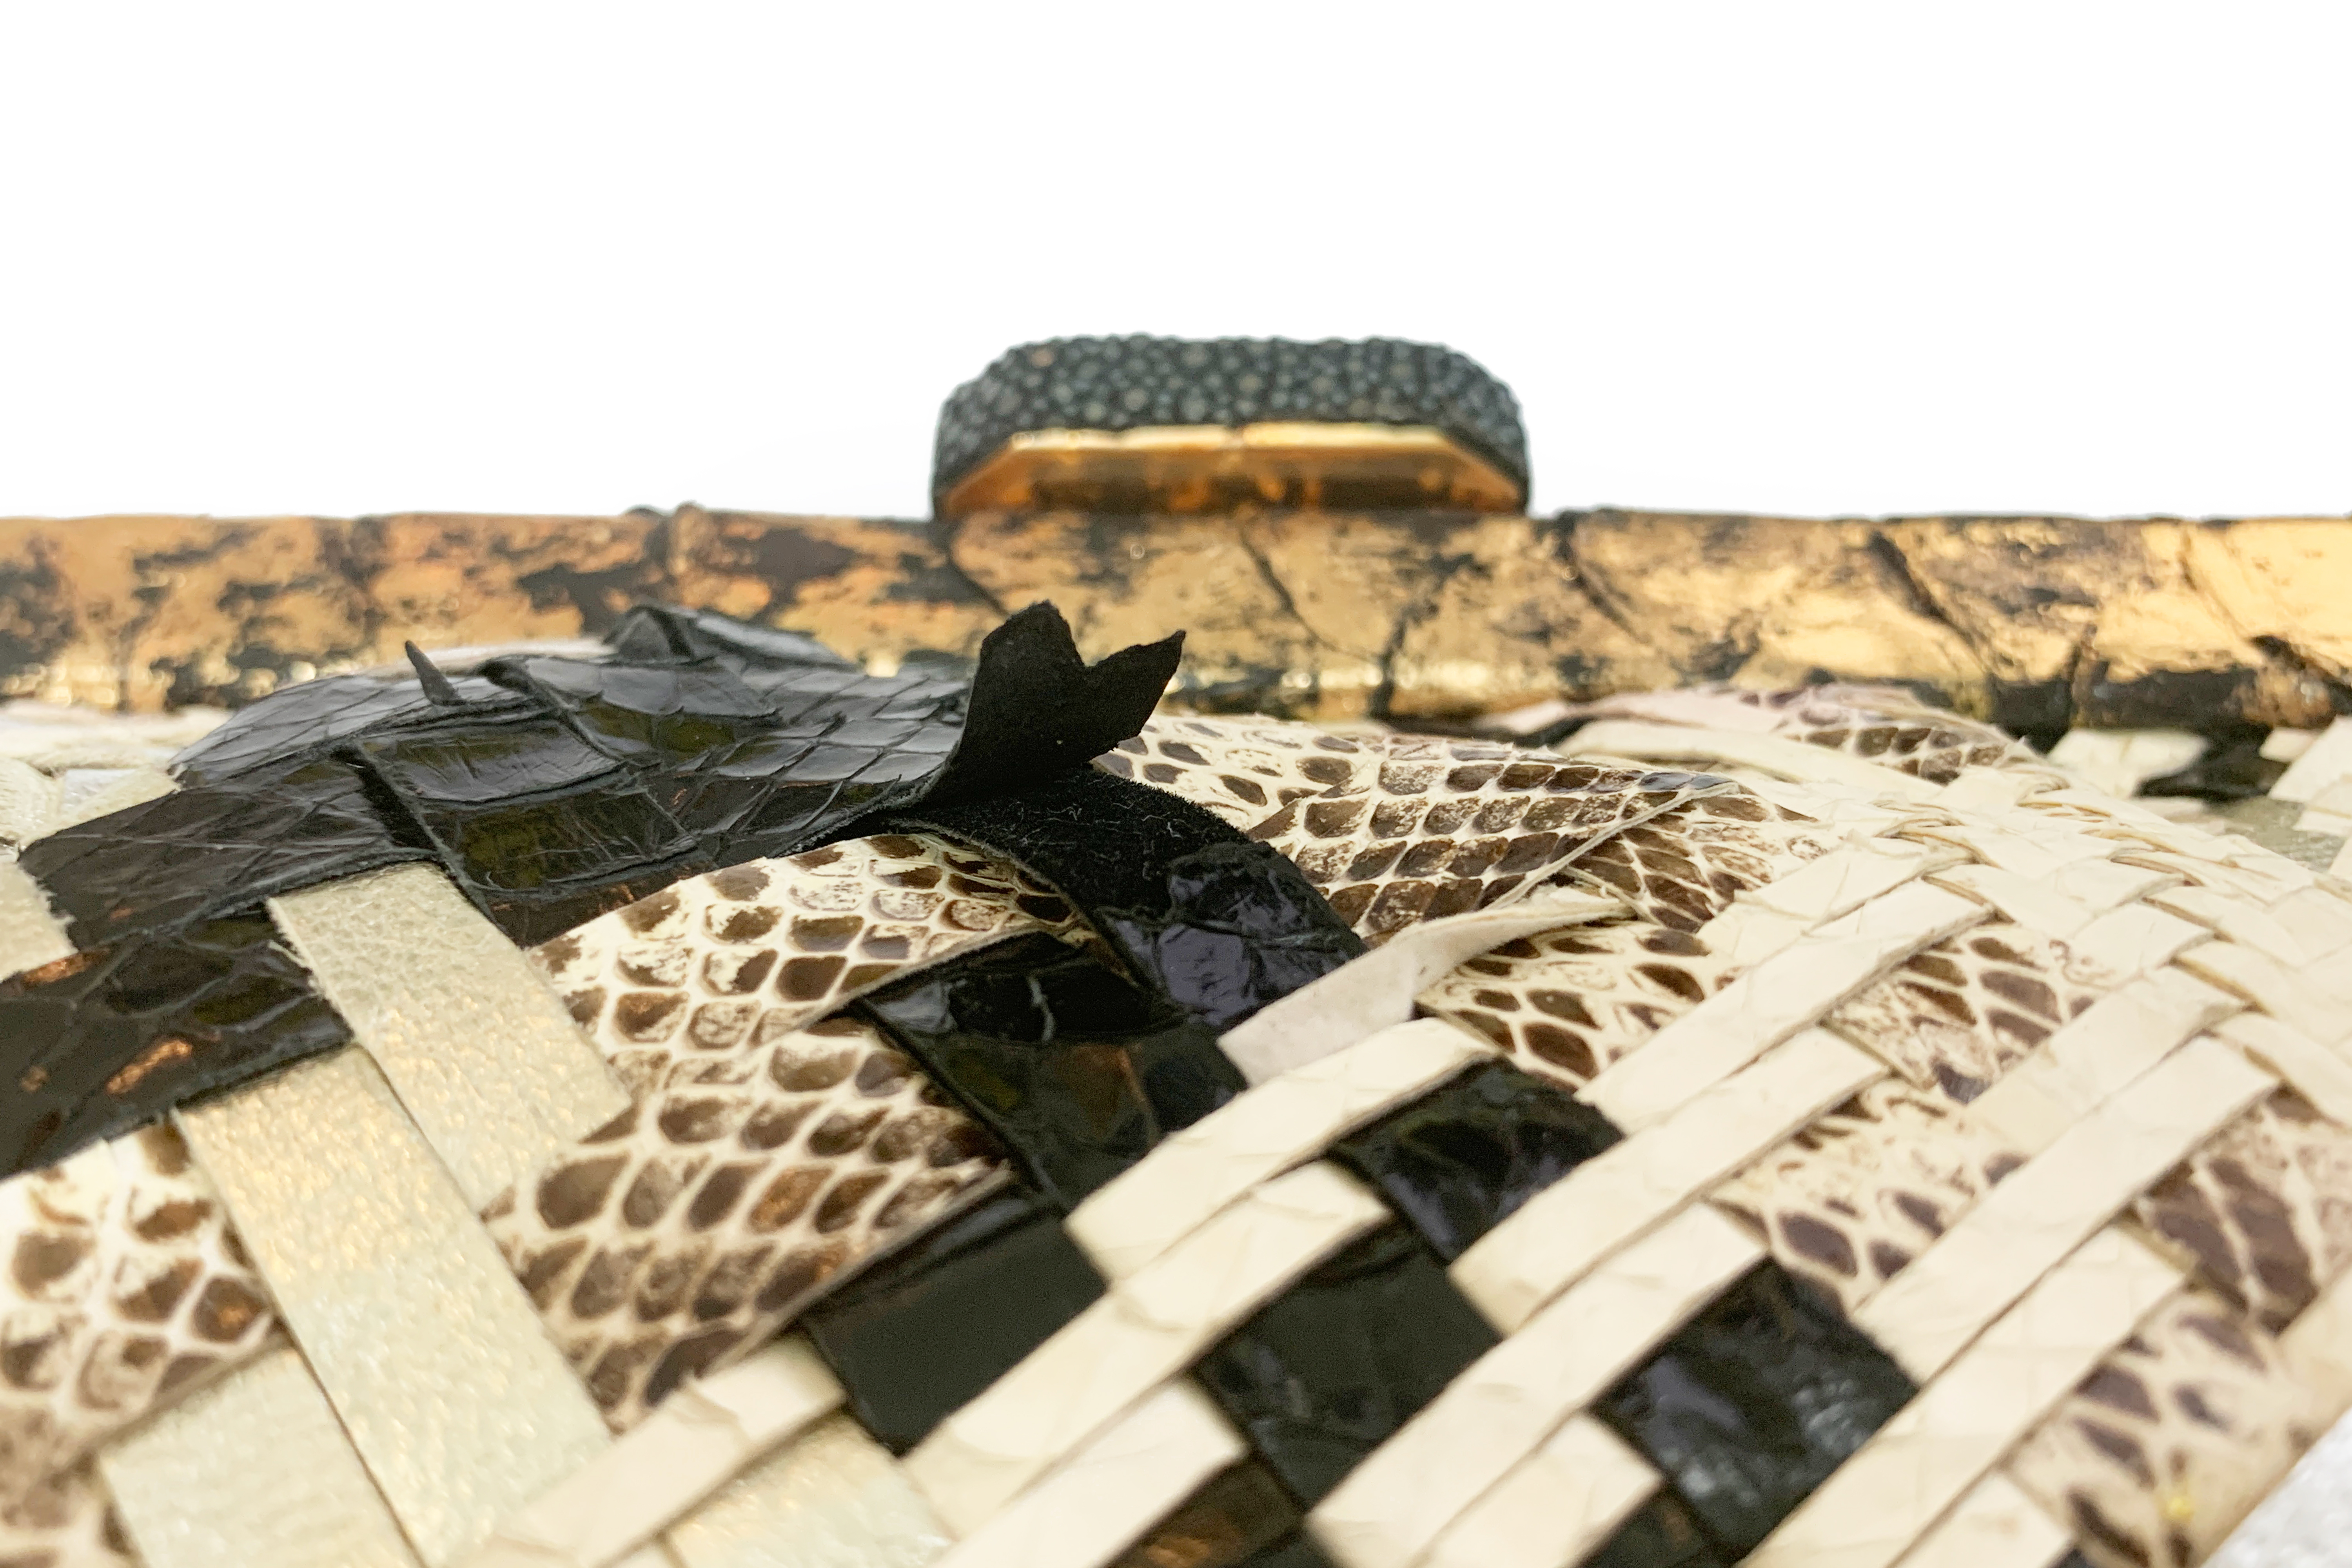 AN ANA MULTICOLOURED SNAKESKIN WEAVED CLUTCH - Image 4 of 5